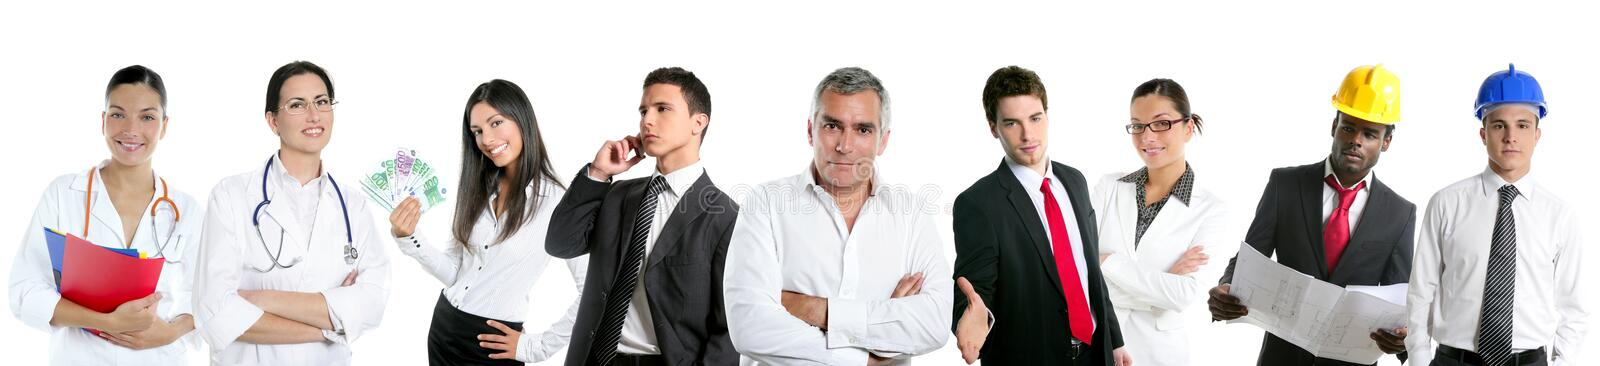 Download Group Of Business People In A Line Row Isolated Stock Photo - Image: 16093888